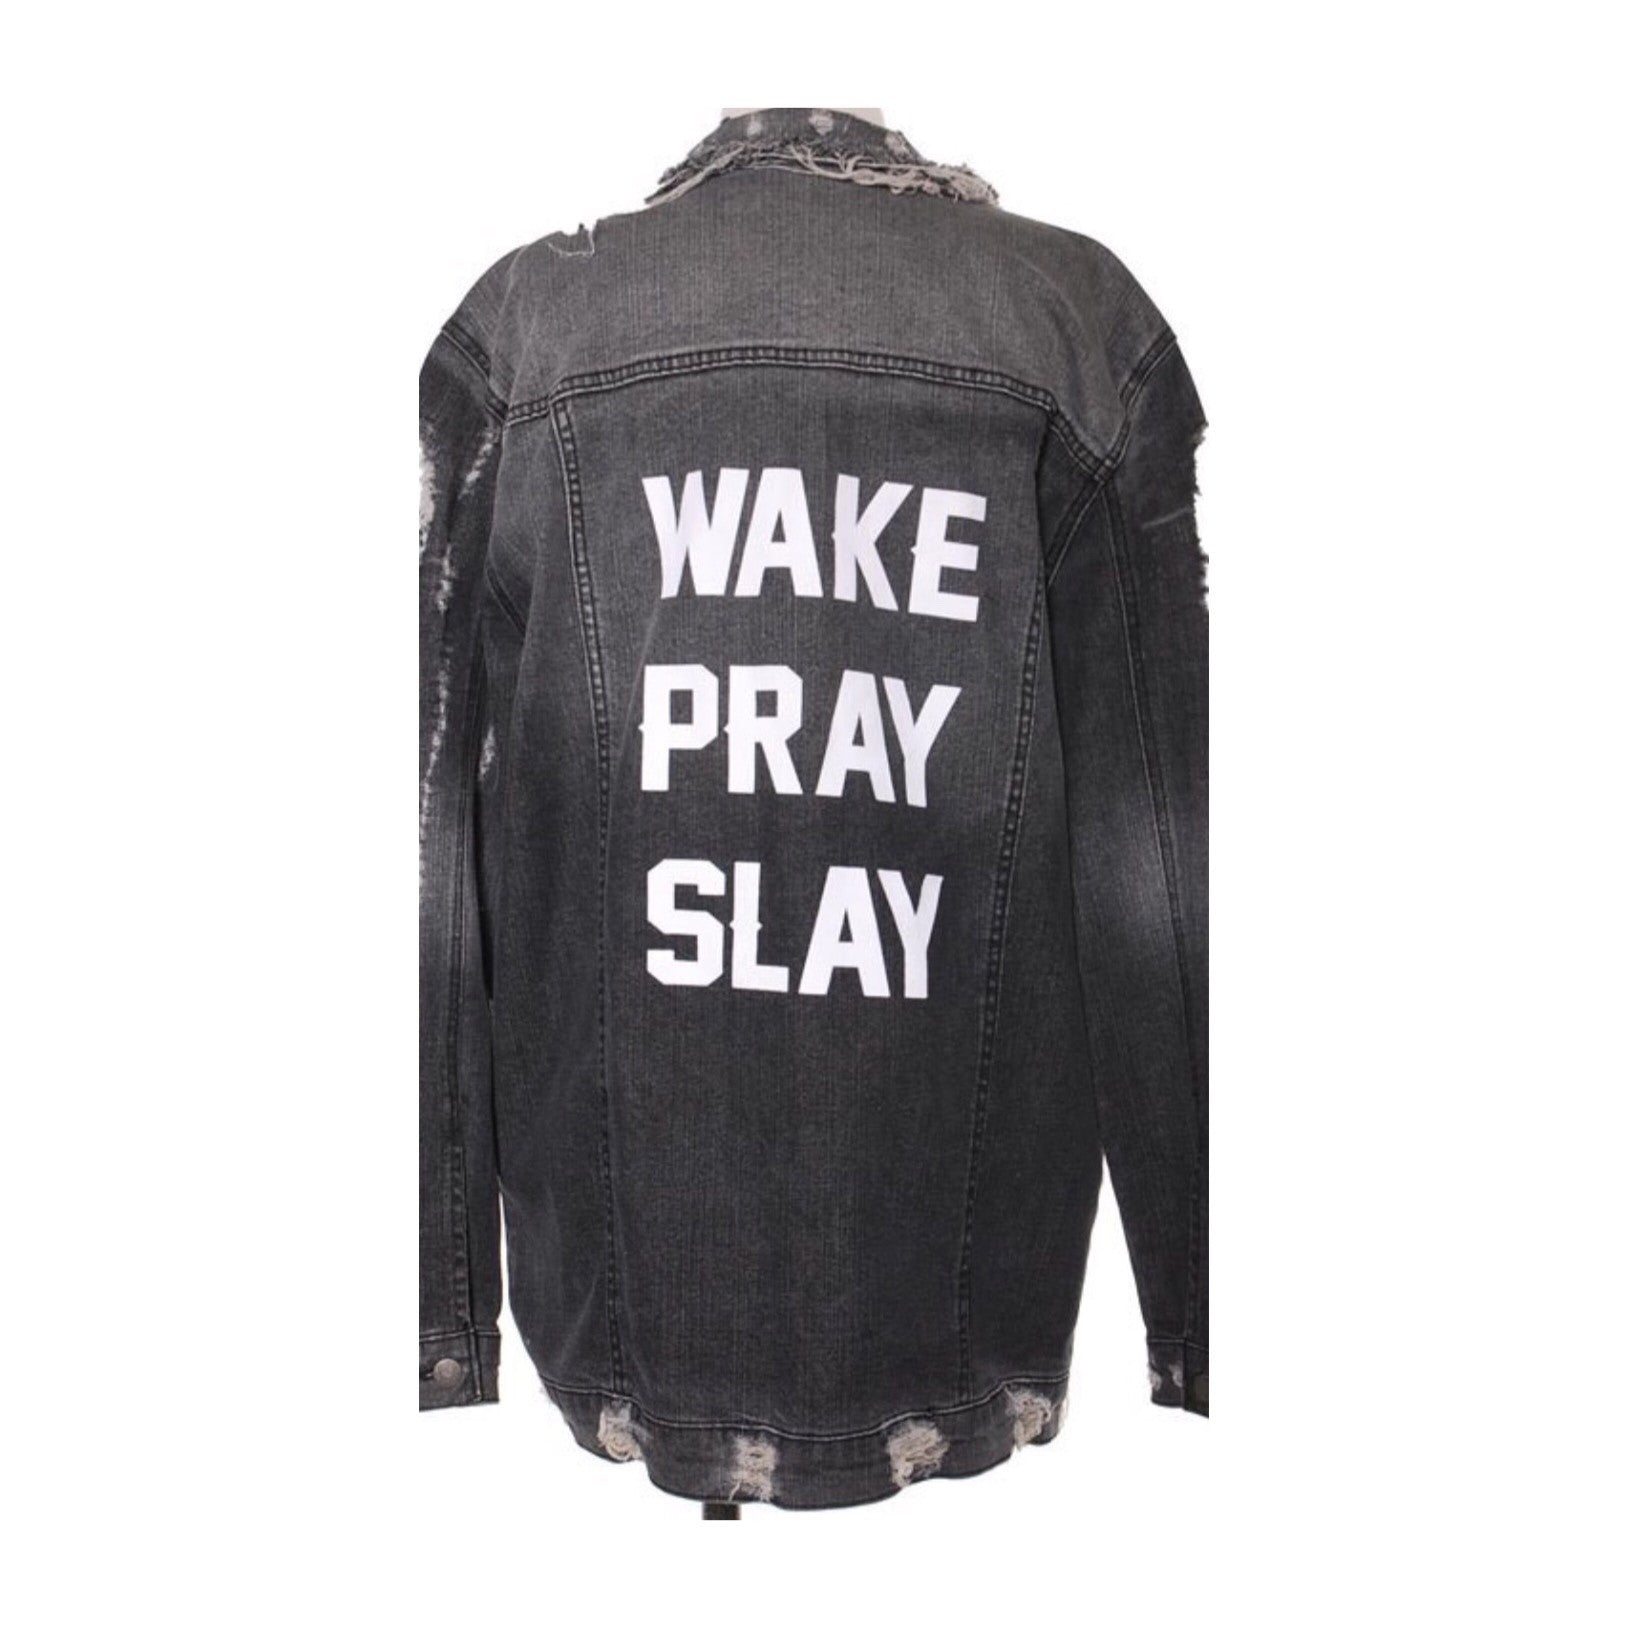 Work Pray Slay Black Denim Jacket